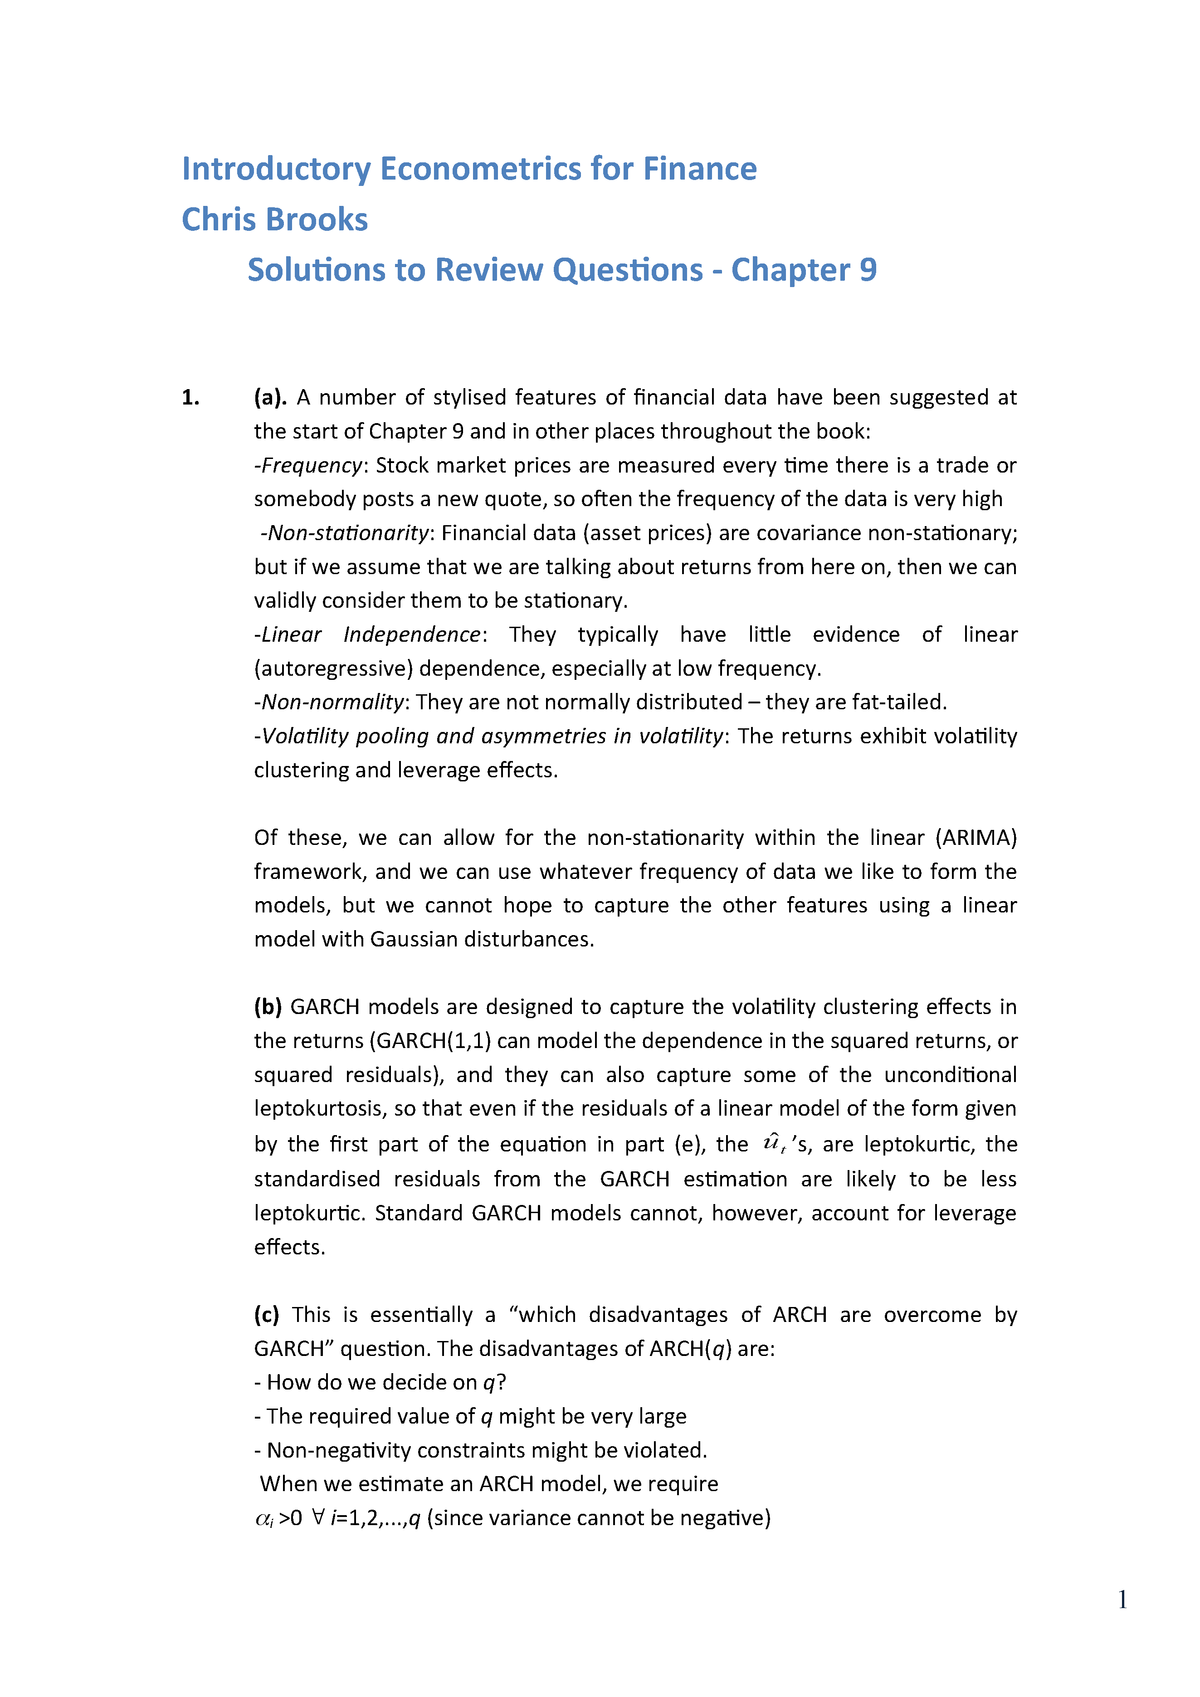 Chapter 9 solutions - Solution manual Introductory Econometrics for